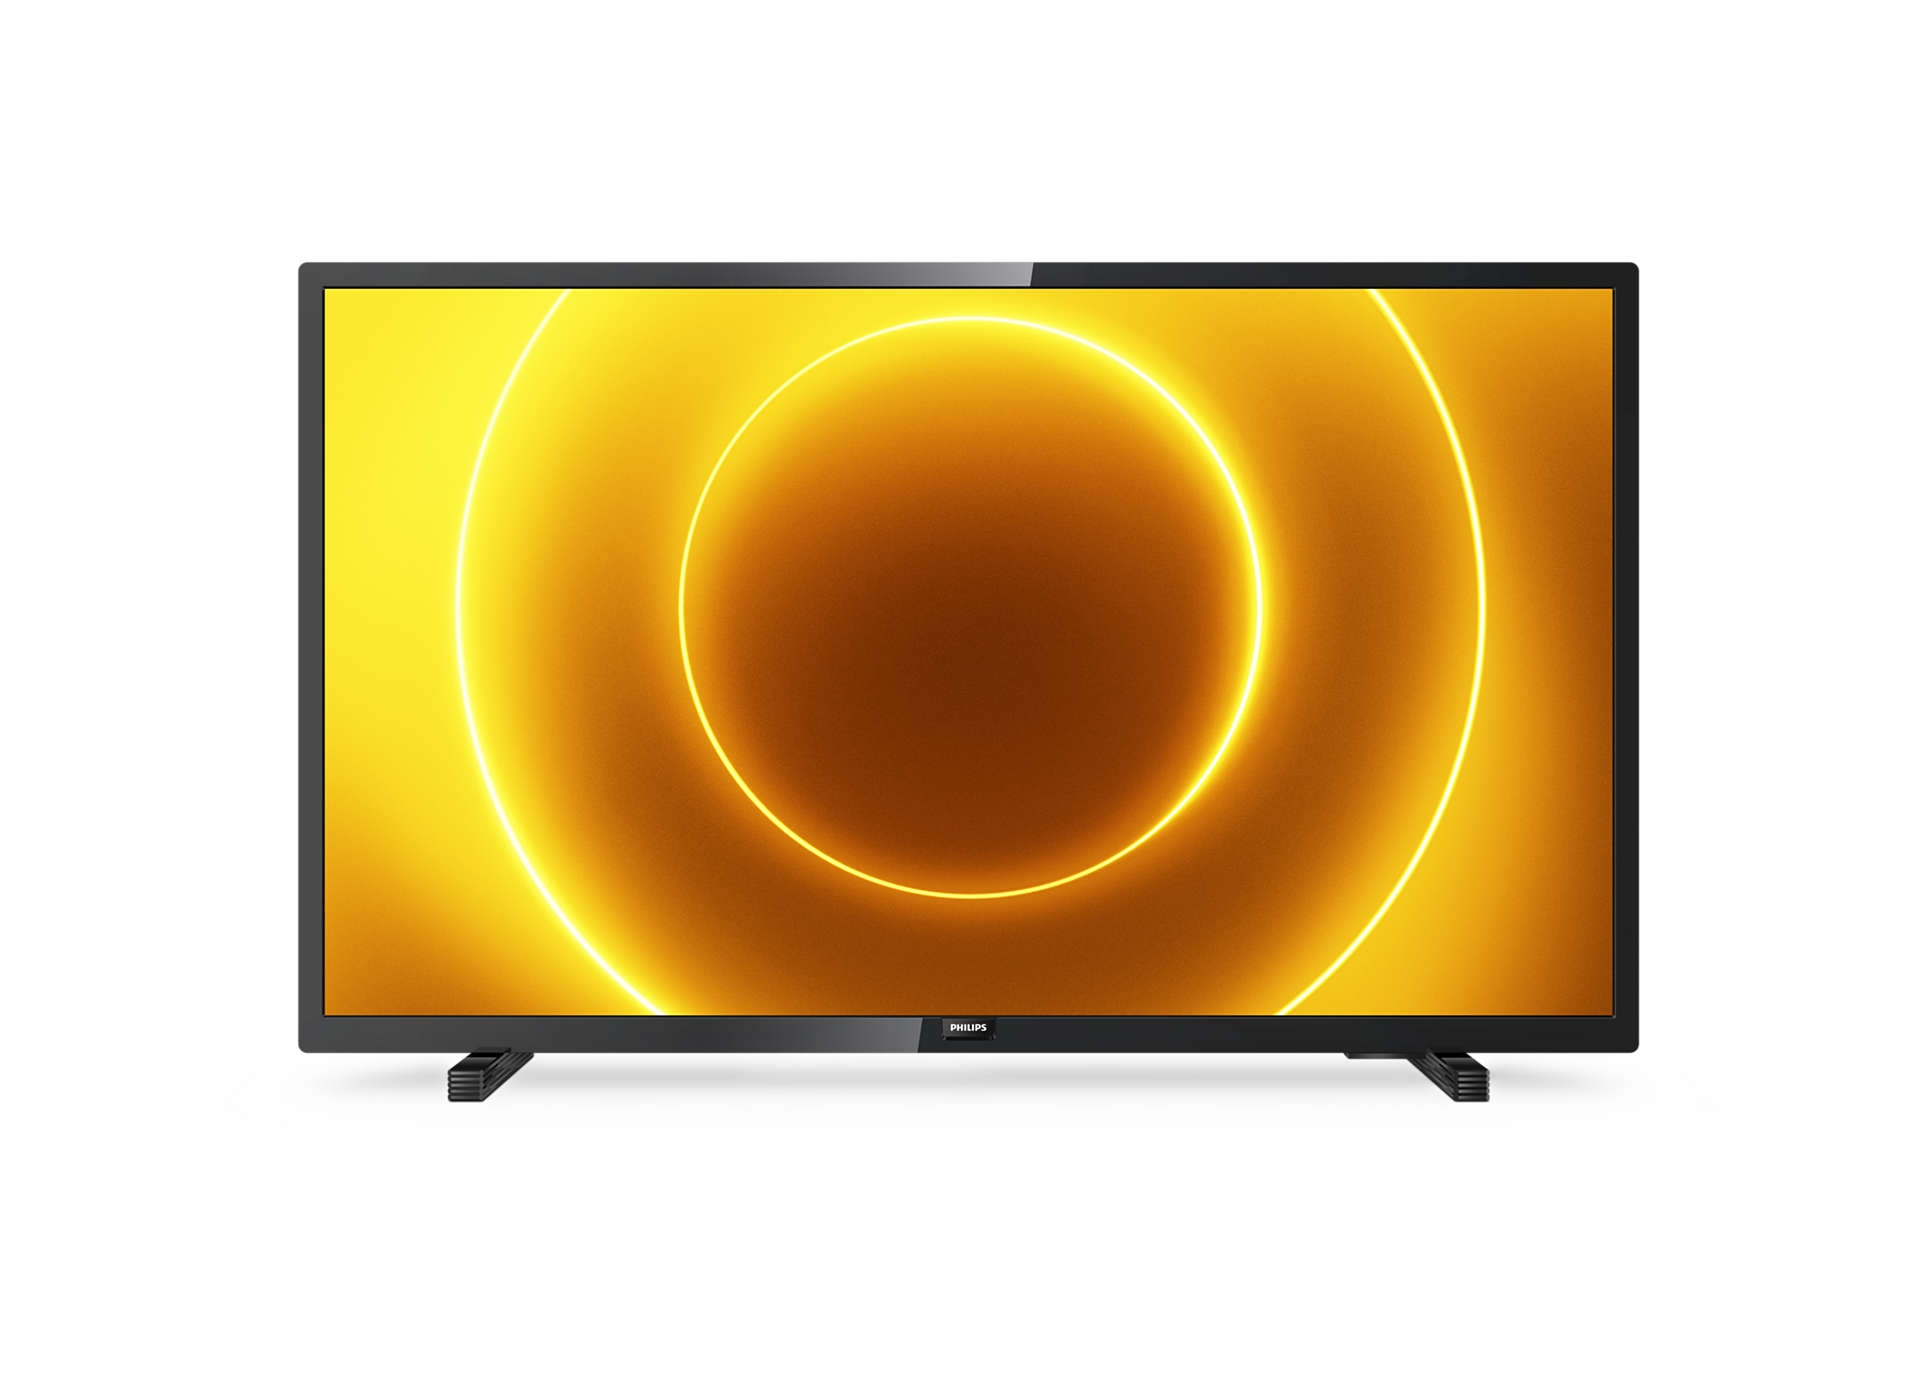 ЖК Телевизор Full HD Philips 43PFS5505 43 дюйма телевизор philips 43 43pfs6825 60 черный